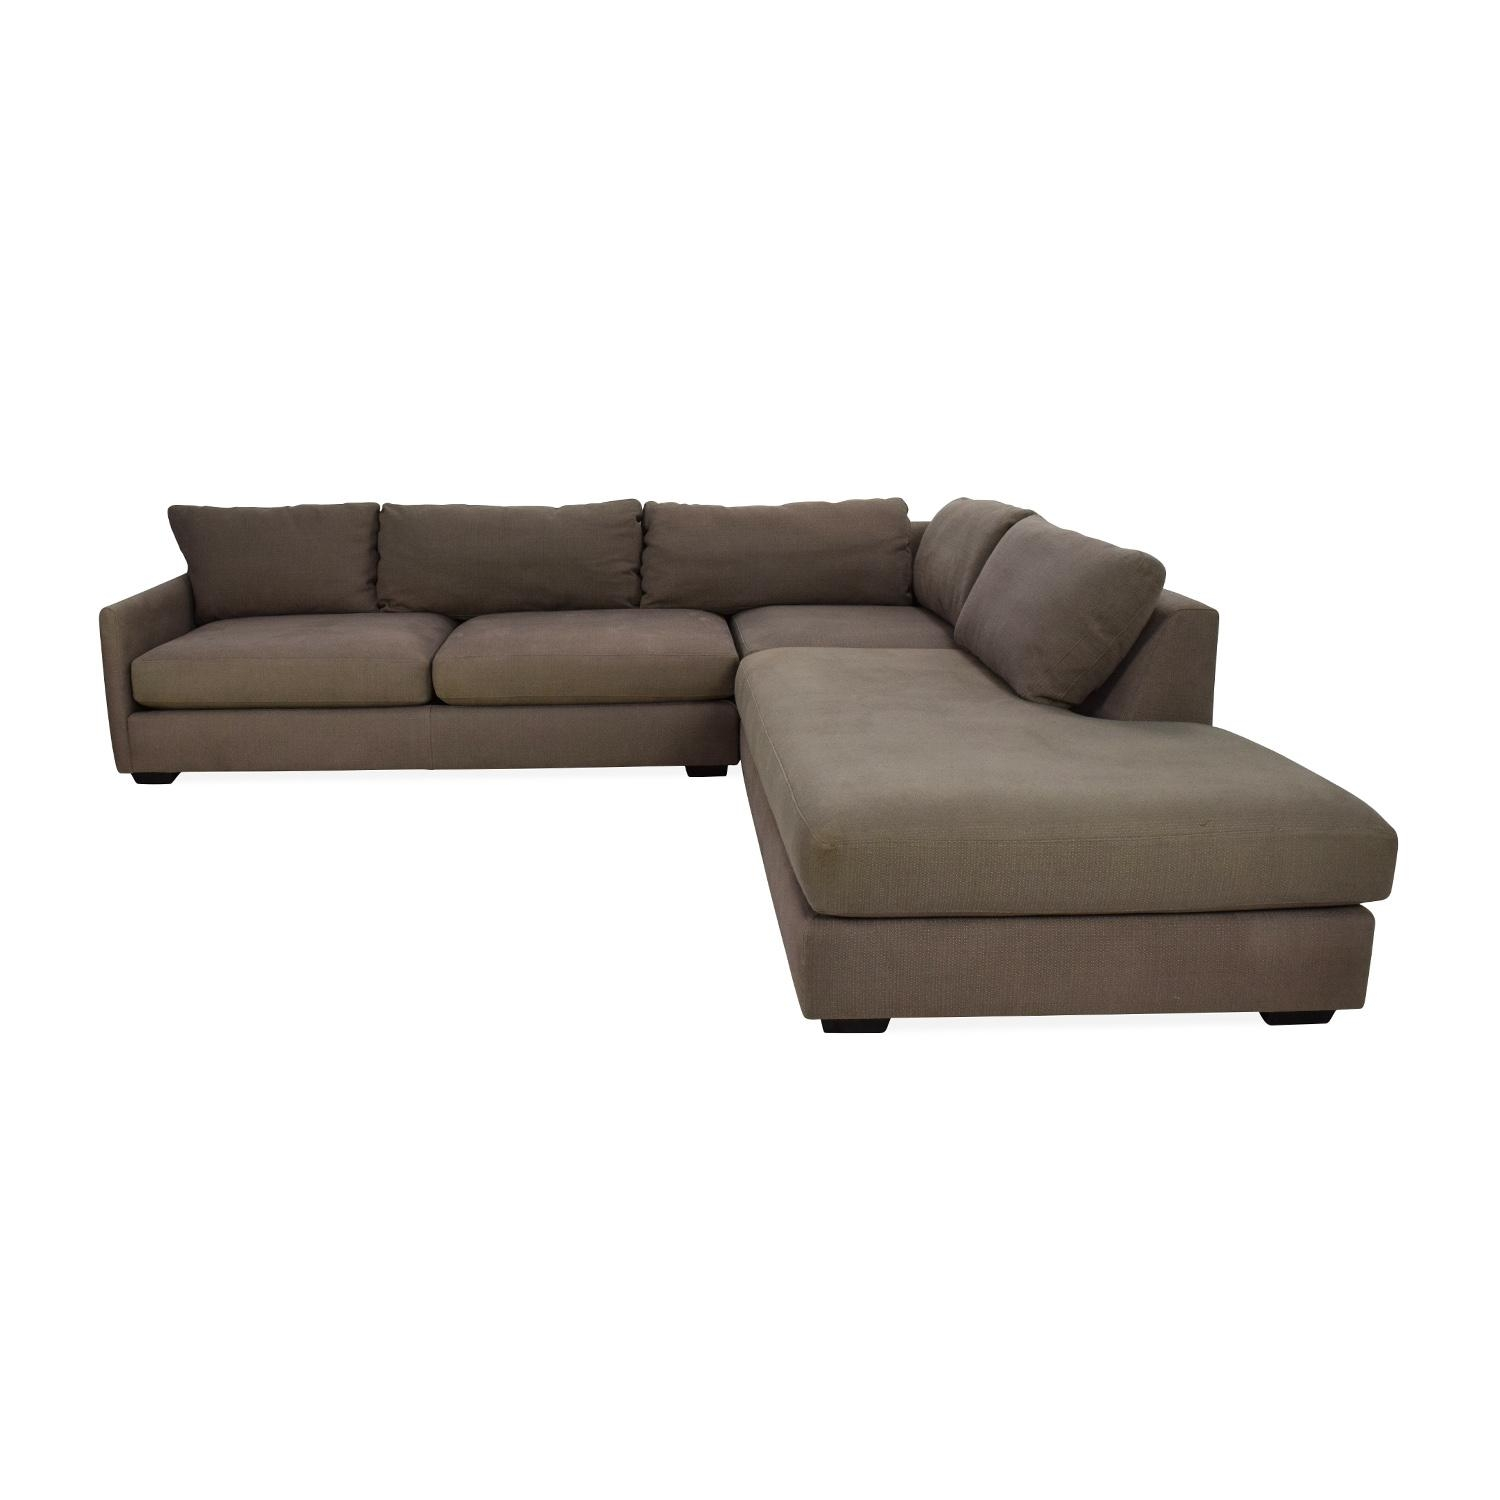 82% Off - Crate And Barrel Crate & Barrel Domino Sectional Sofa inside Crate And Barrel Sleeper Sofas